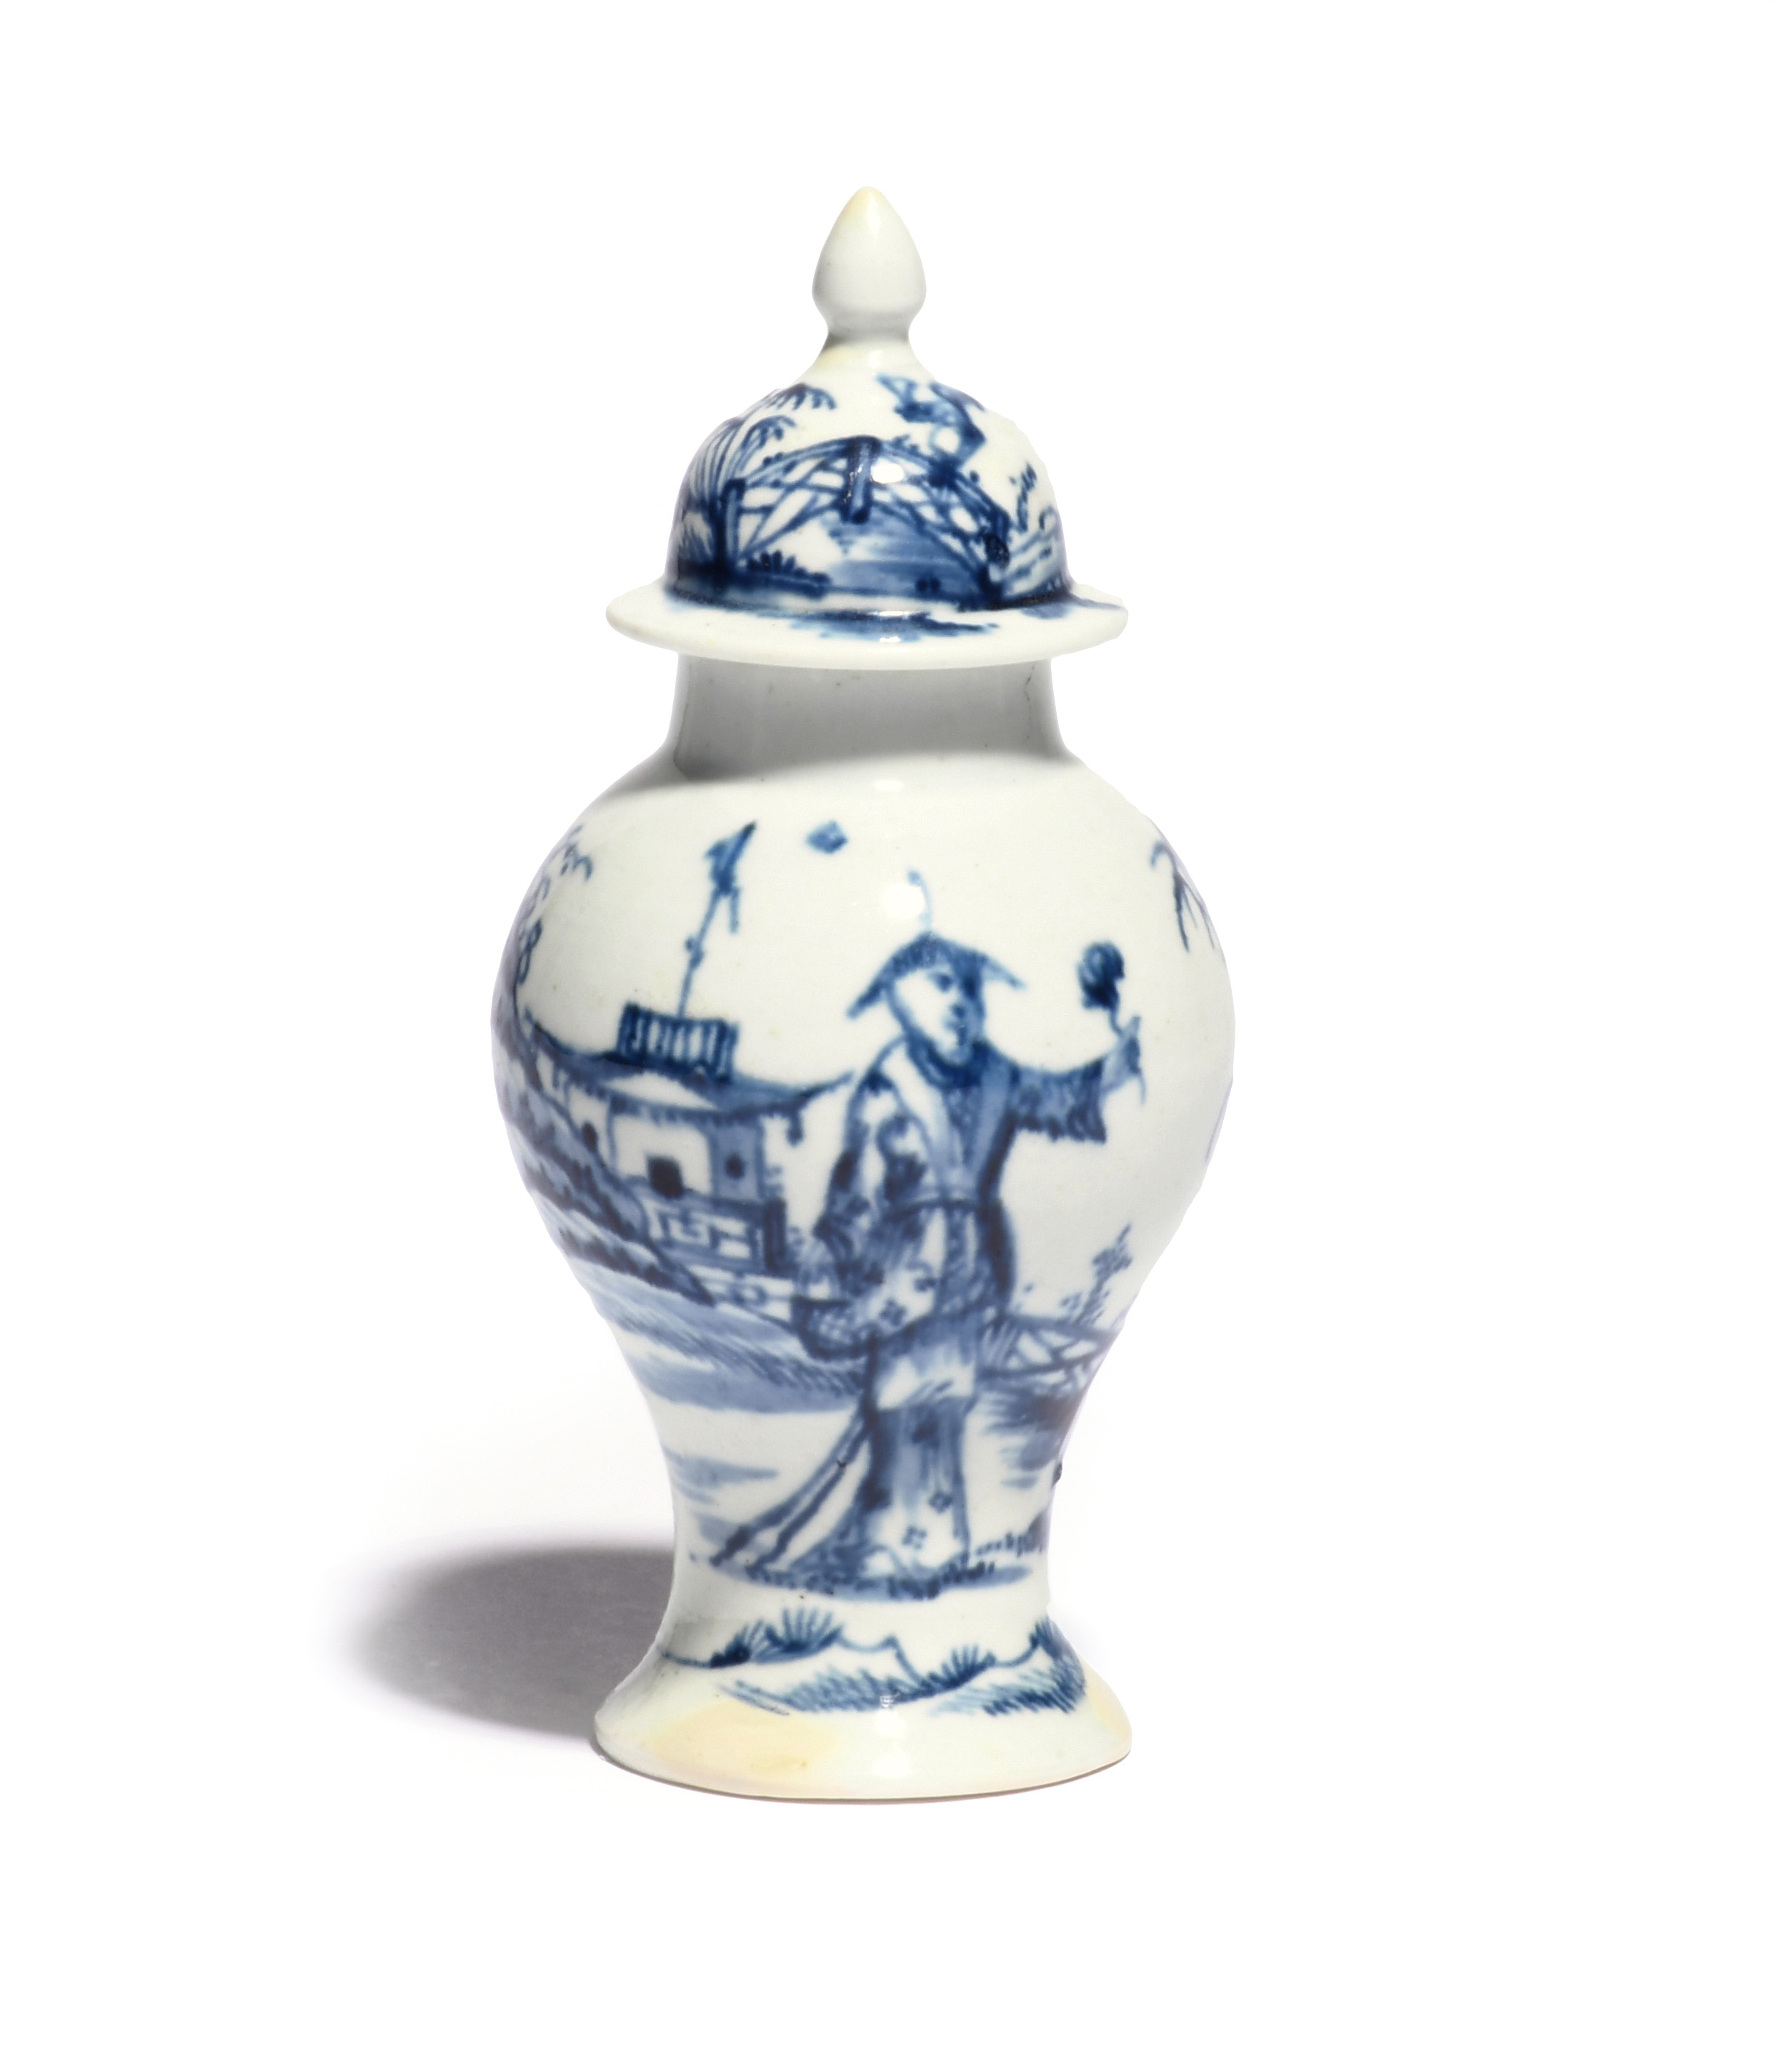 A small James Pennington (Liverpool) blue and white baluster vase and cover c.1765-70, painted